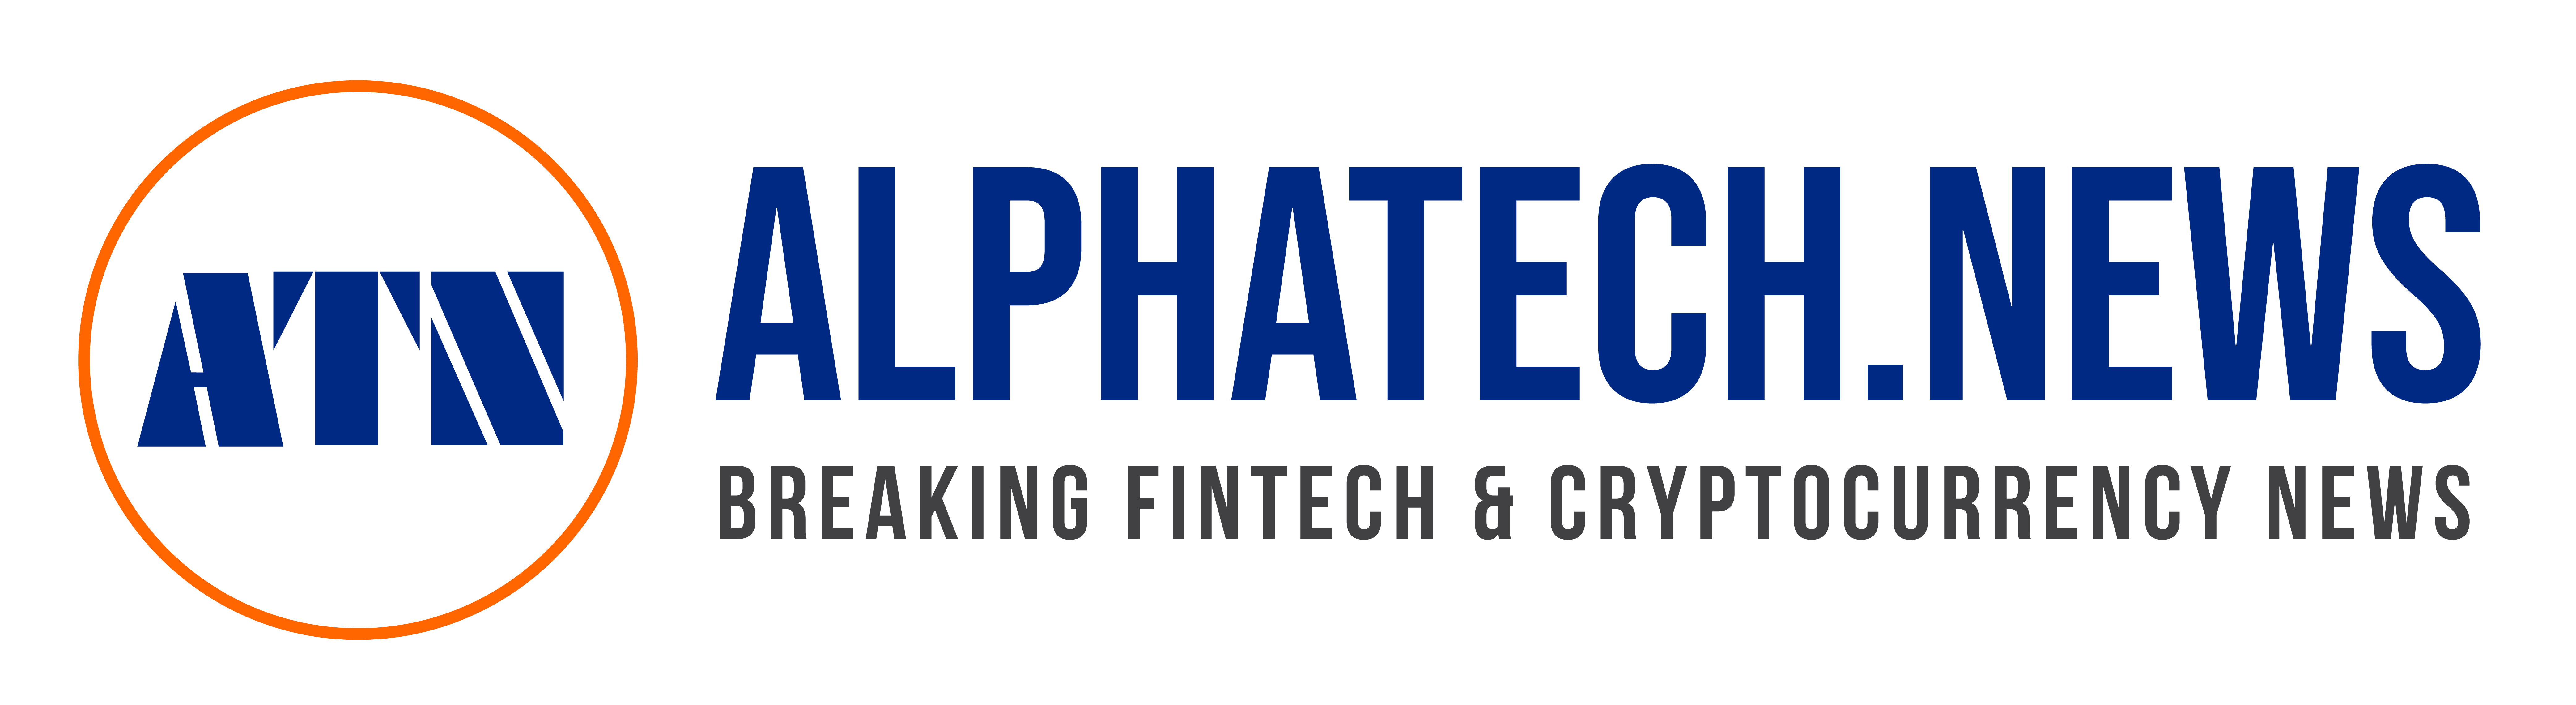 Alpha tech news - alphatech.news